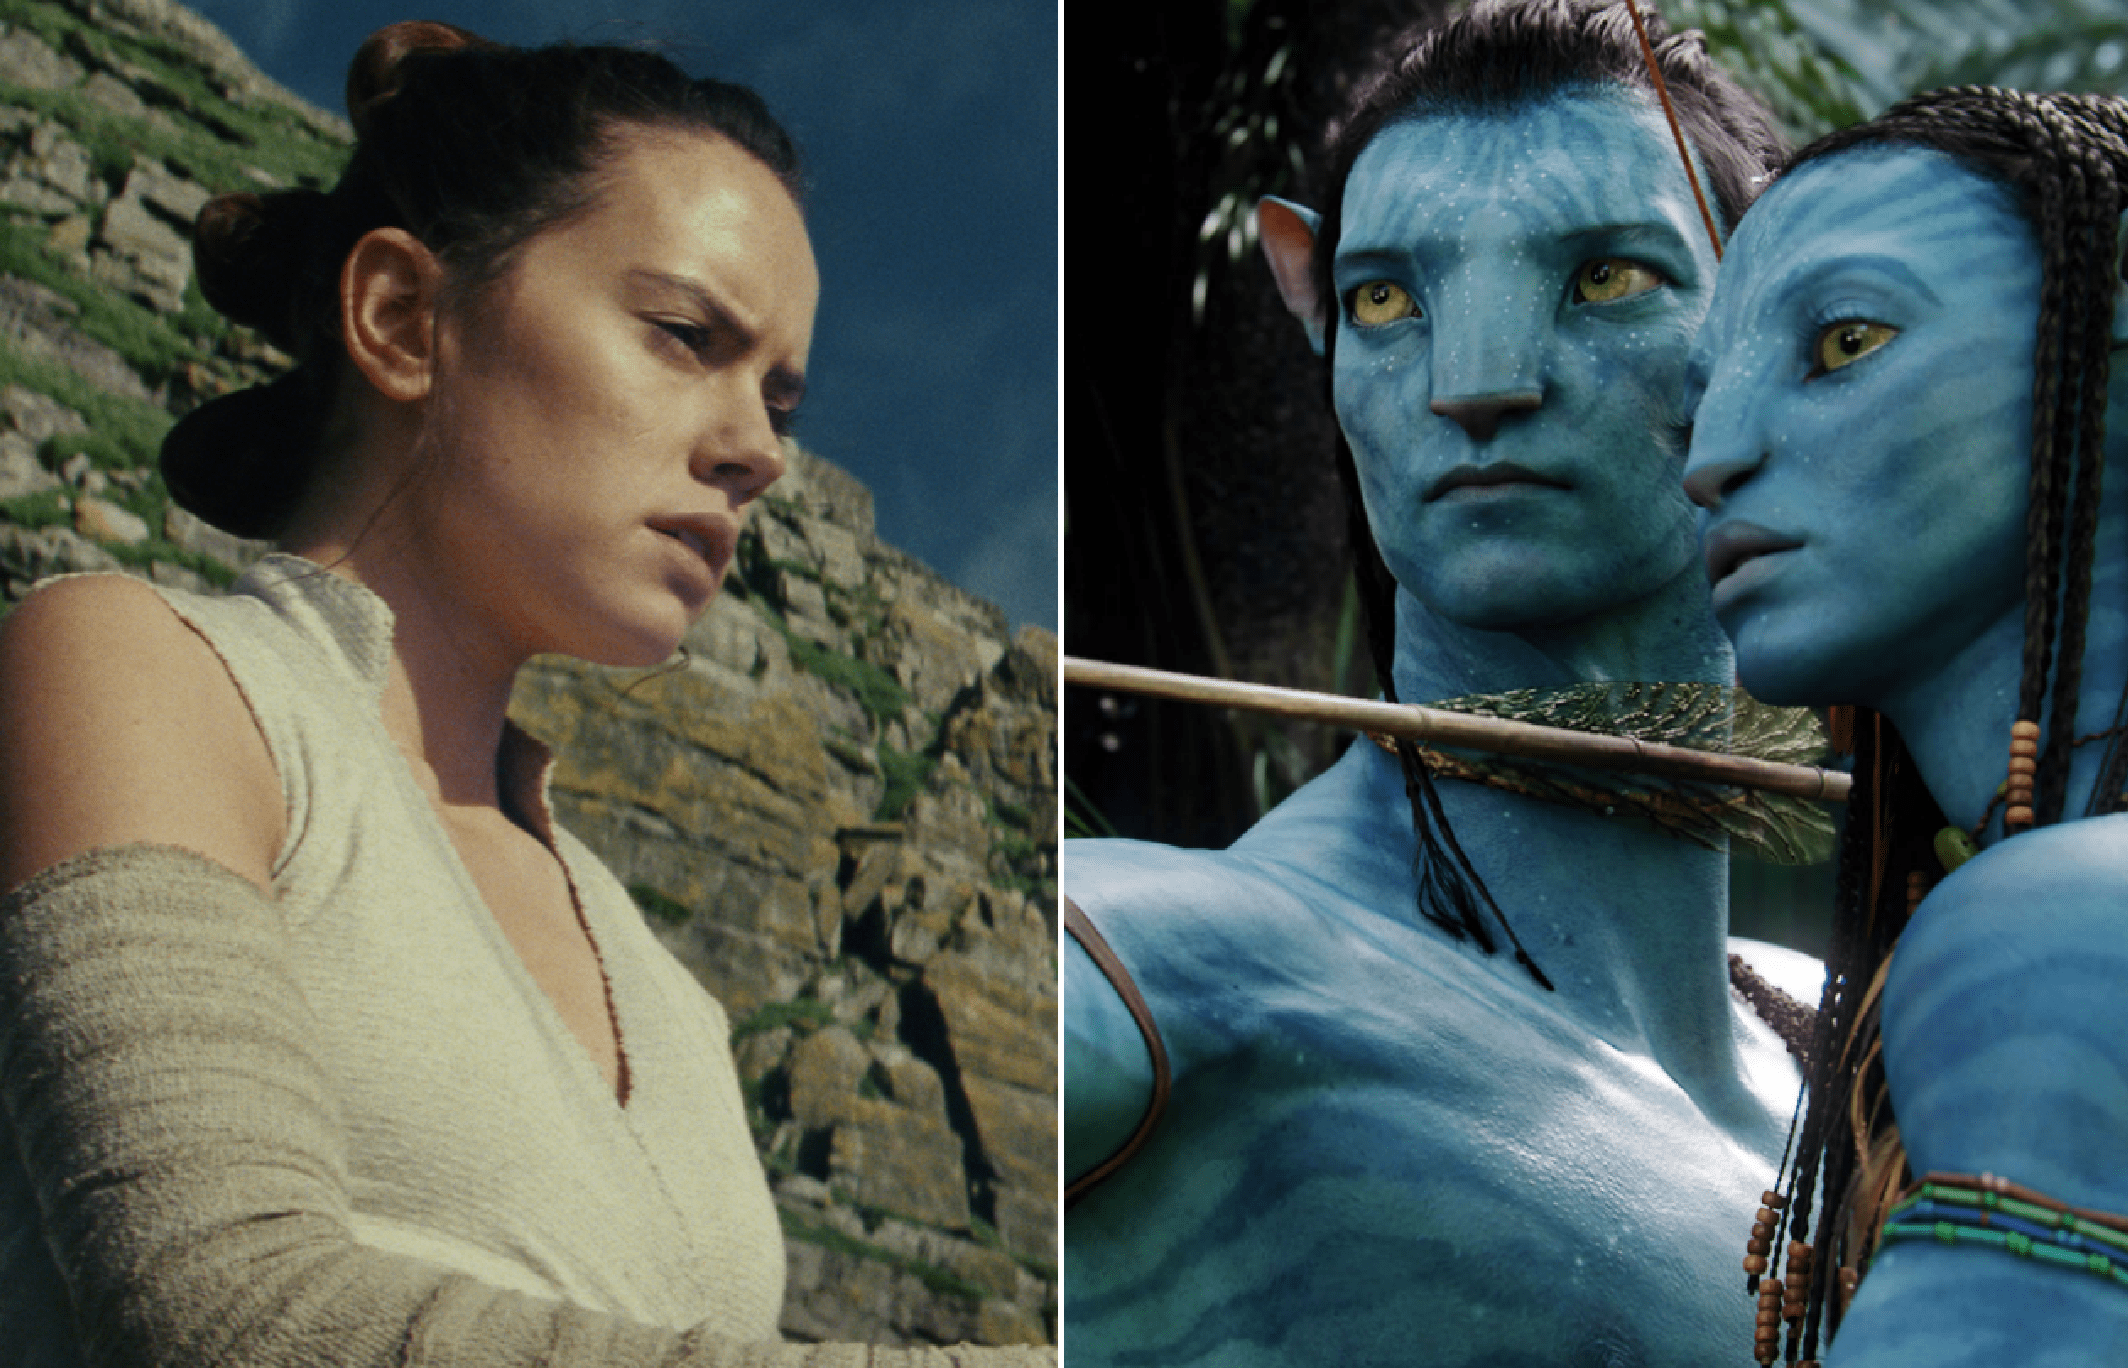 Star wars and avatar